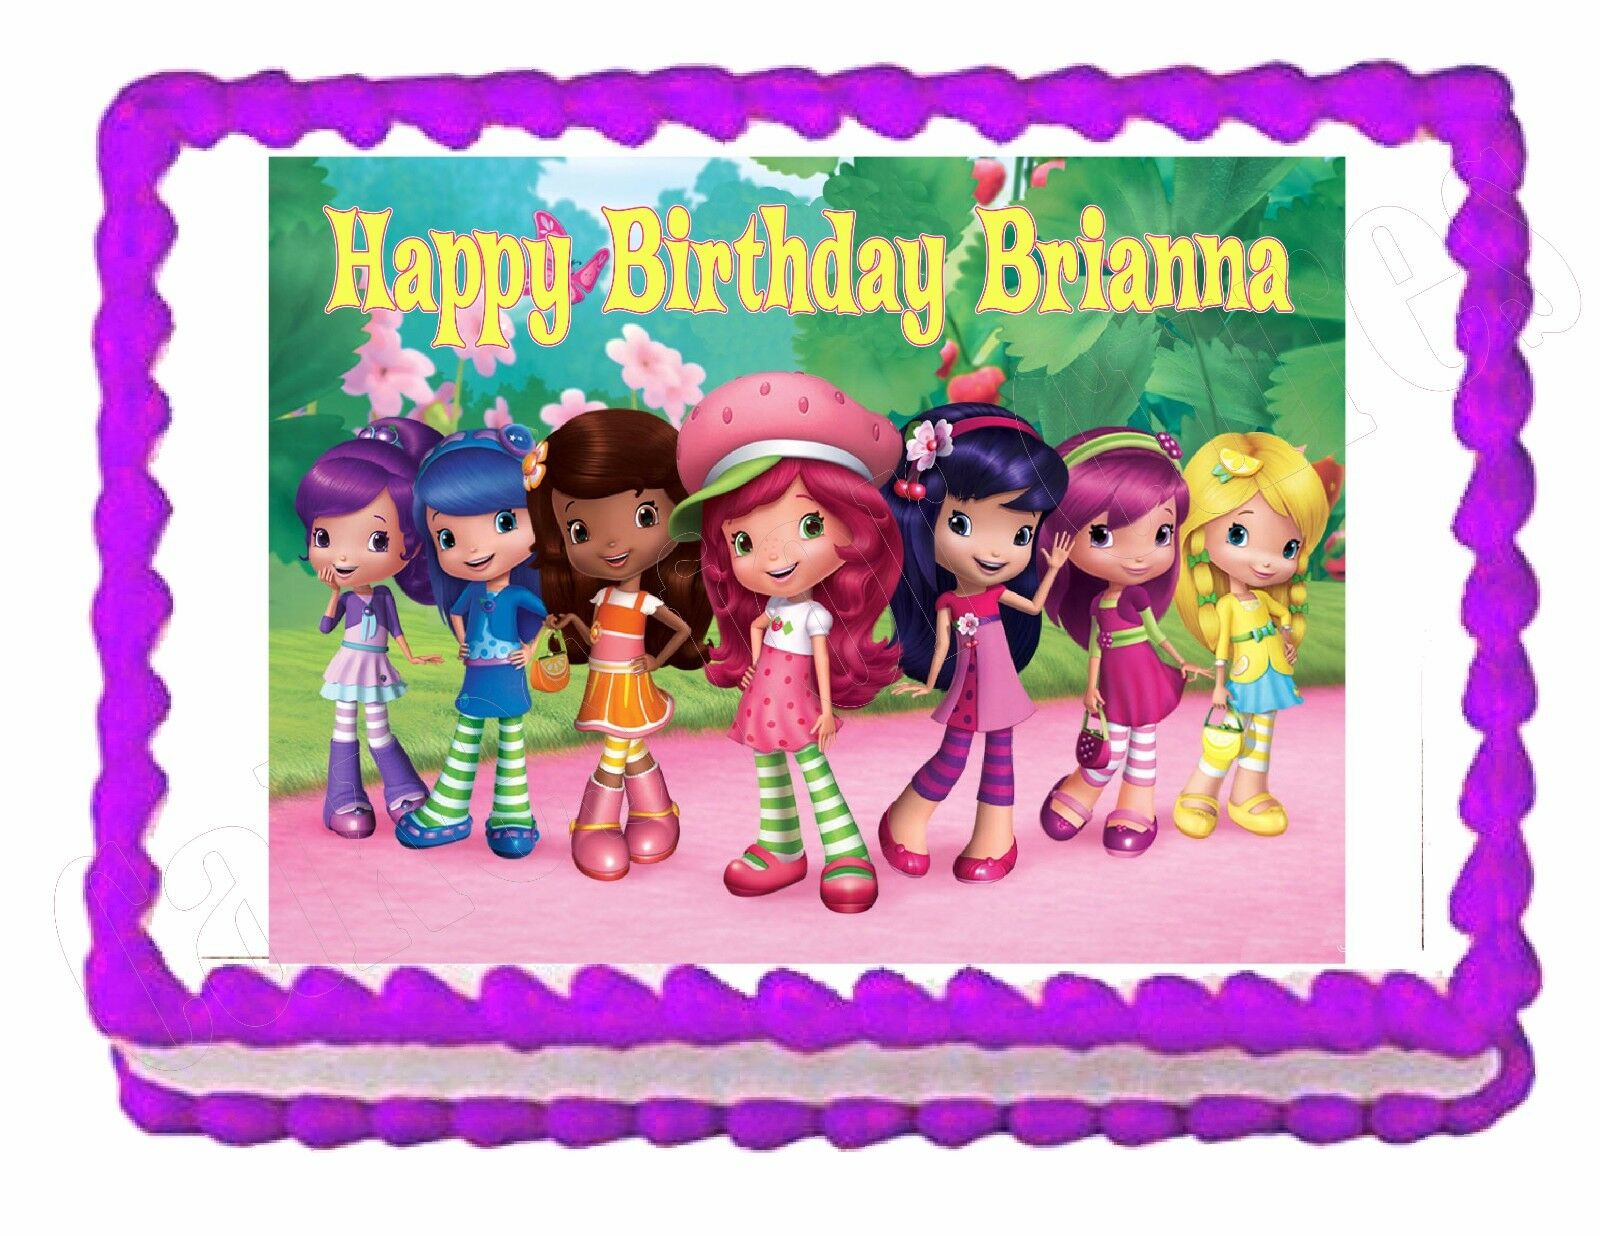 Strawberry shortcake and friends cake decoration edible for Angelina ballerina edible cake topper decoration sale